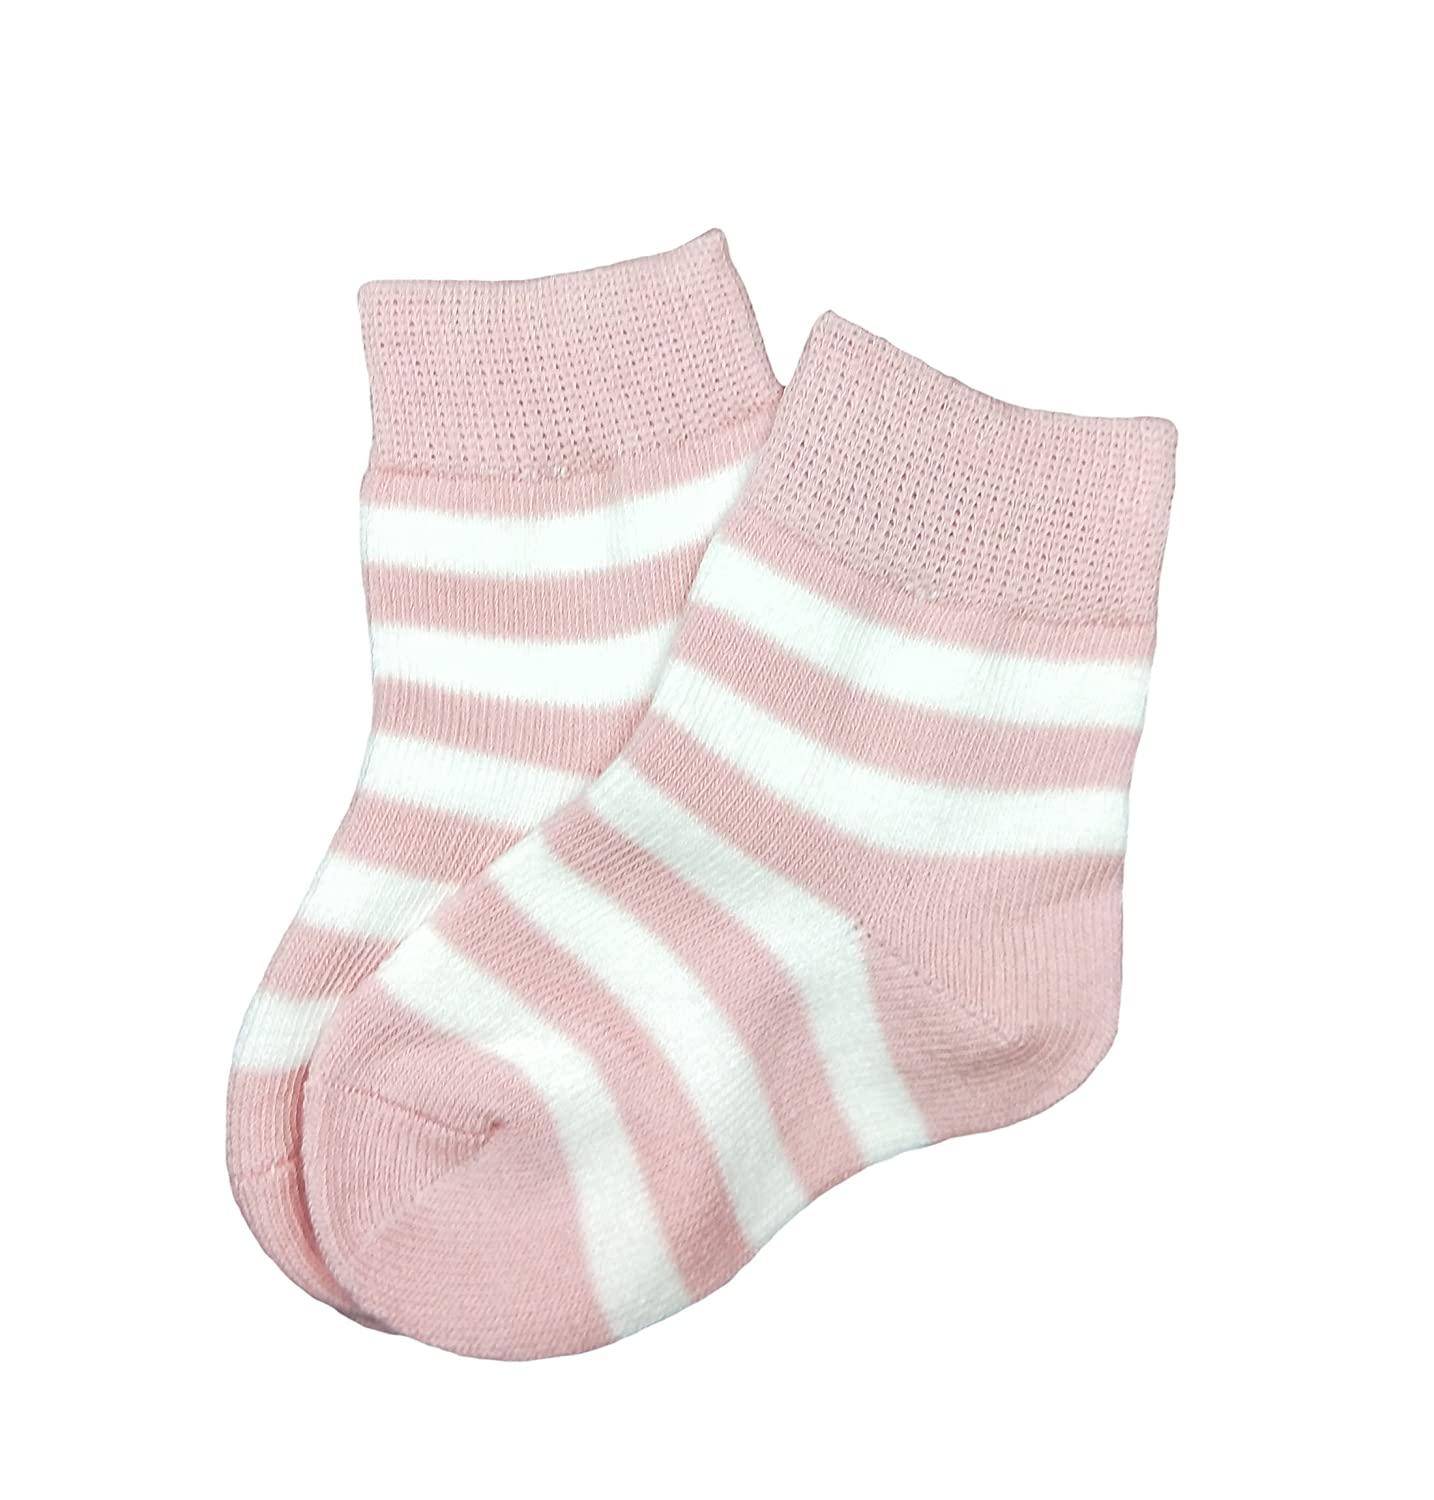 Cute /& Soft Warm Wool Cotton Newborn Socks for Infant Baby 5 Pairs Multicolor Unisex-Baby Ankle Socks